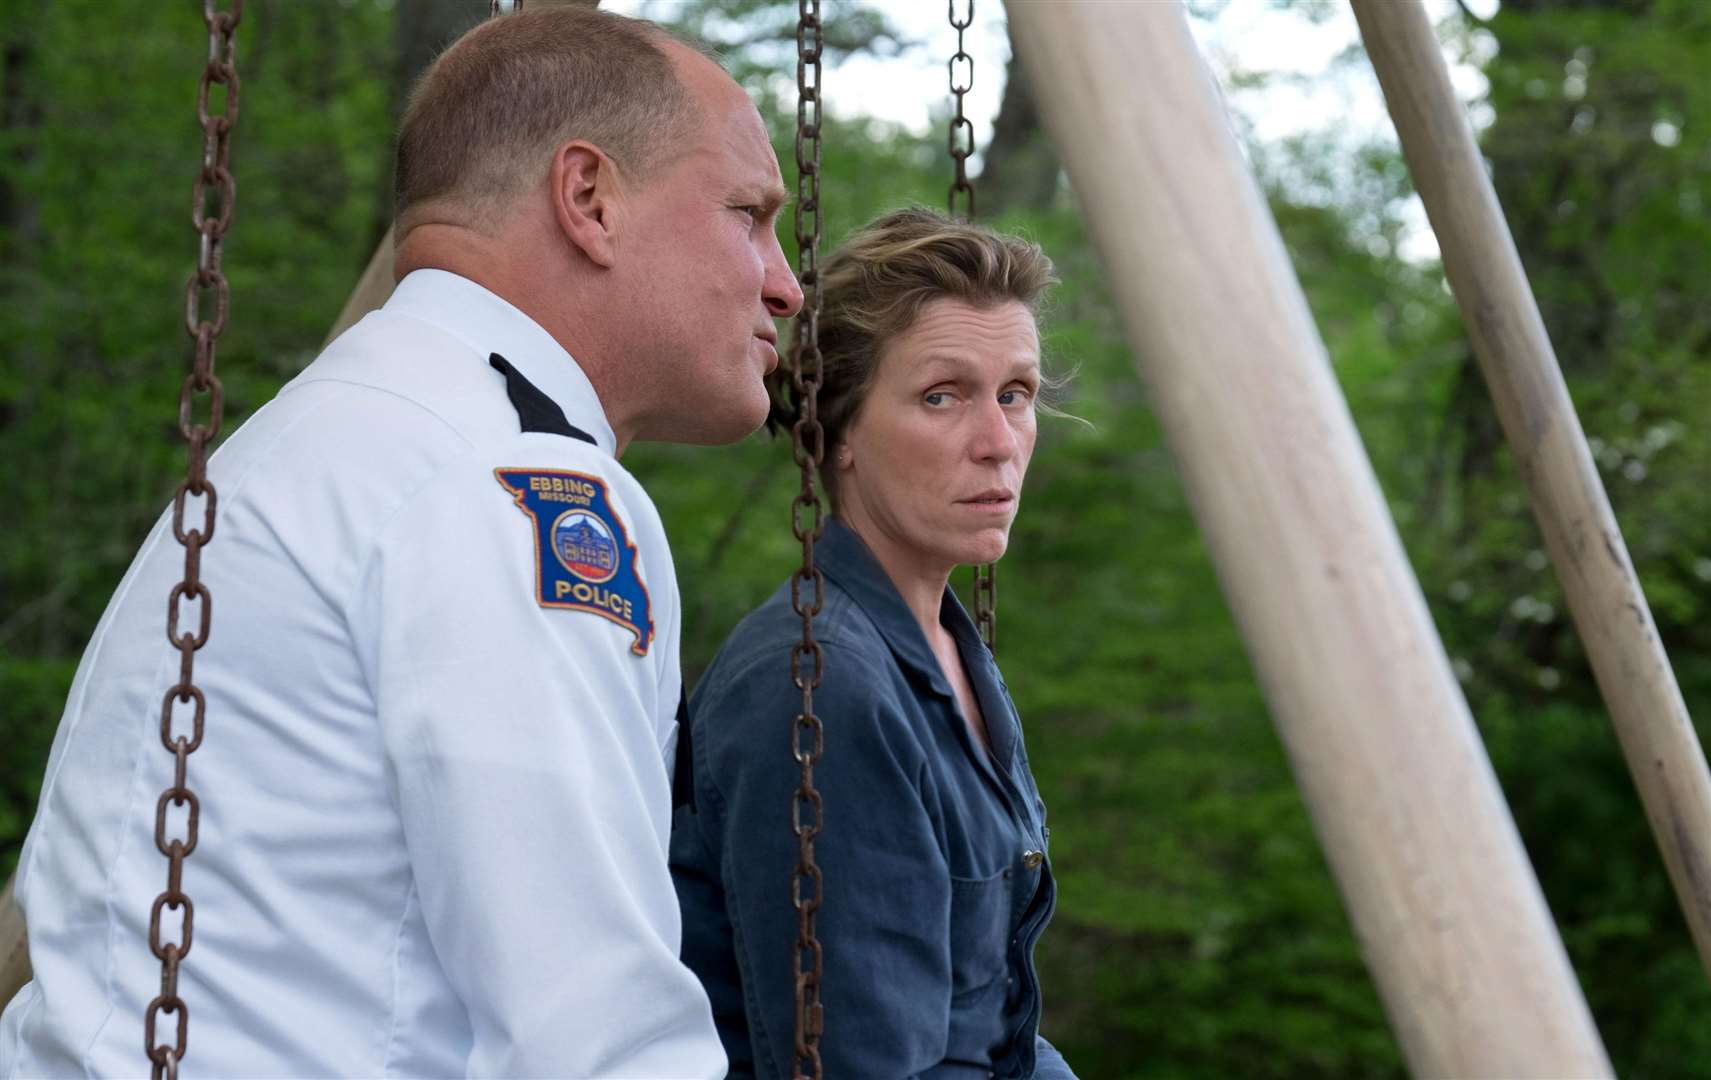 Three Billboards Outside Ebbing, Missouri. Pictured: Woody Harrelson as Sheriff Bill Willoughby and Frances McDormand as Mildred Hayes. Picture: PA Photo/Twentieth Century Fox Film Corporation/Merrick Morton